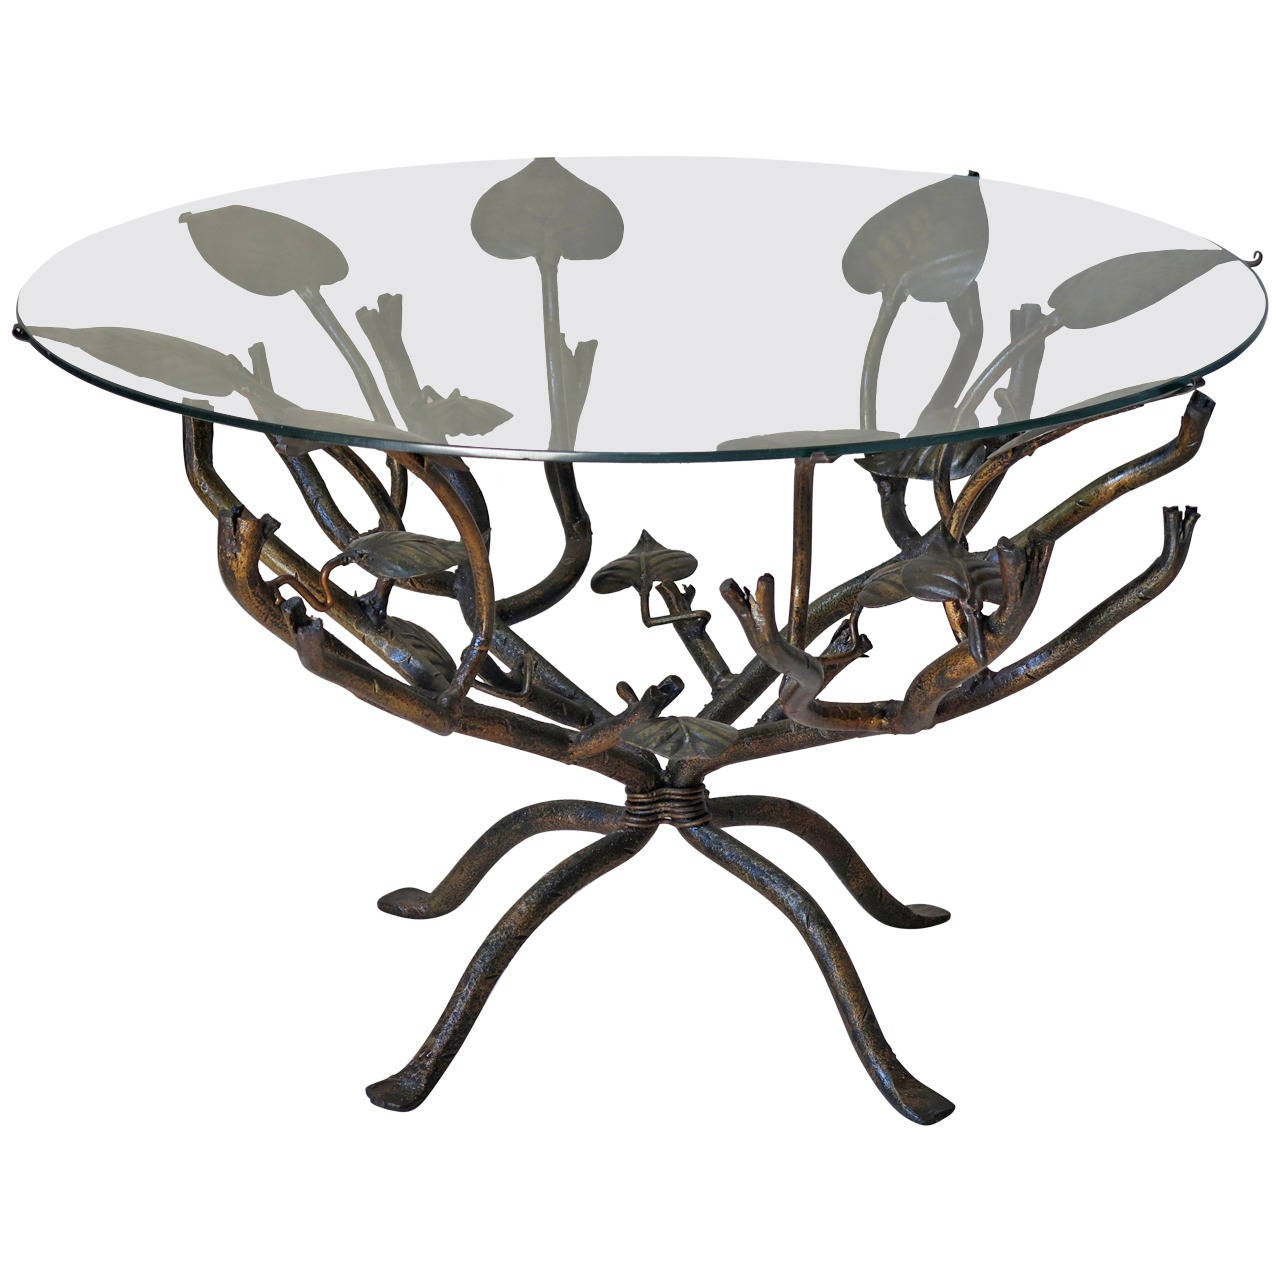 Gilt wrought iron leaf coffee table france circa 1950s for Round wrought iron and glass coffee table